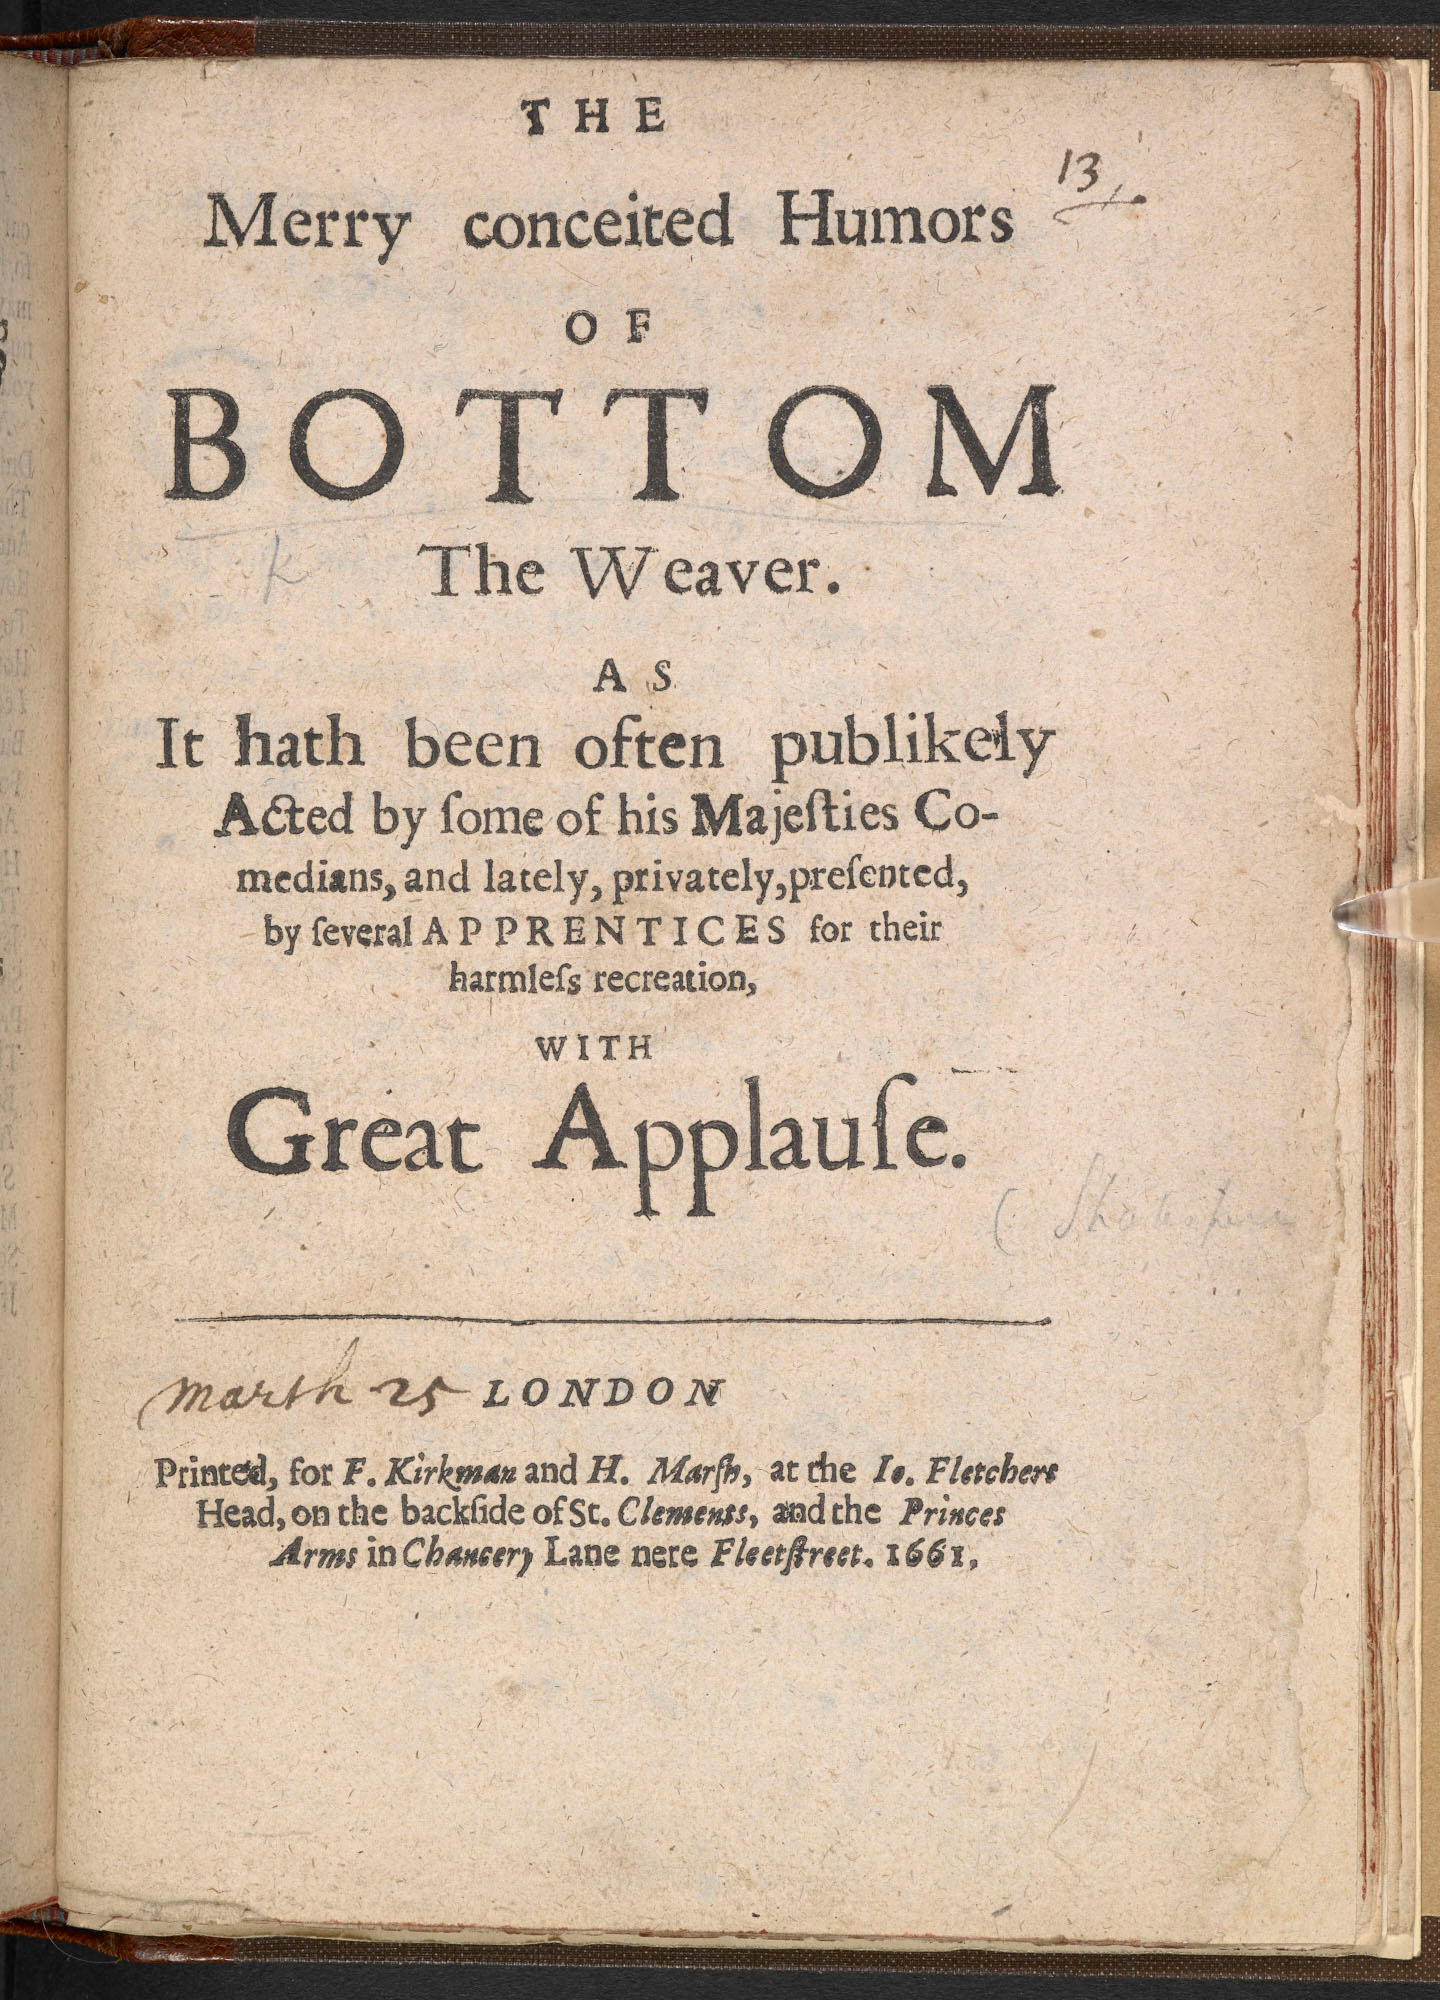 The Merry conceited Humors of Bottom the Weaver, 1661